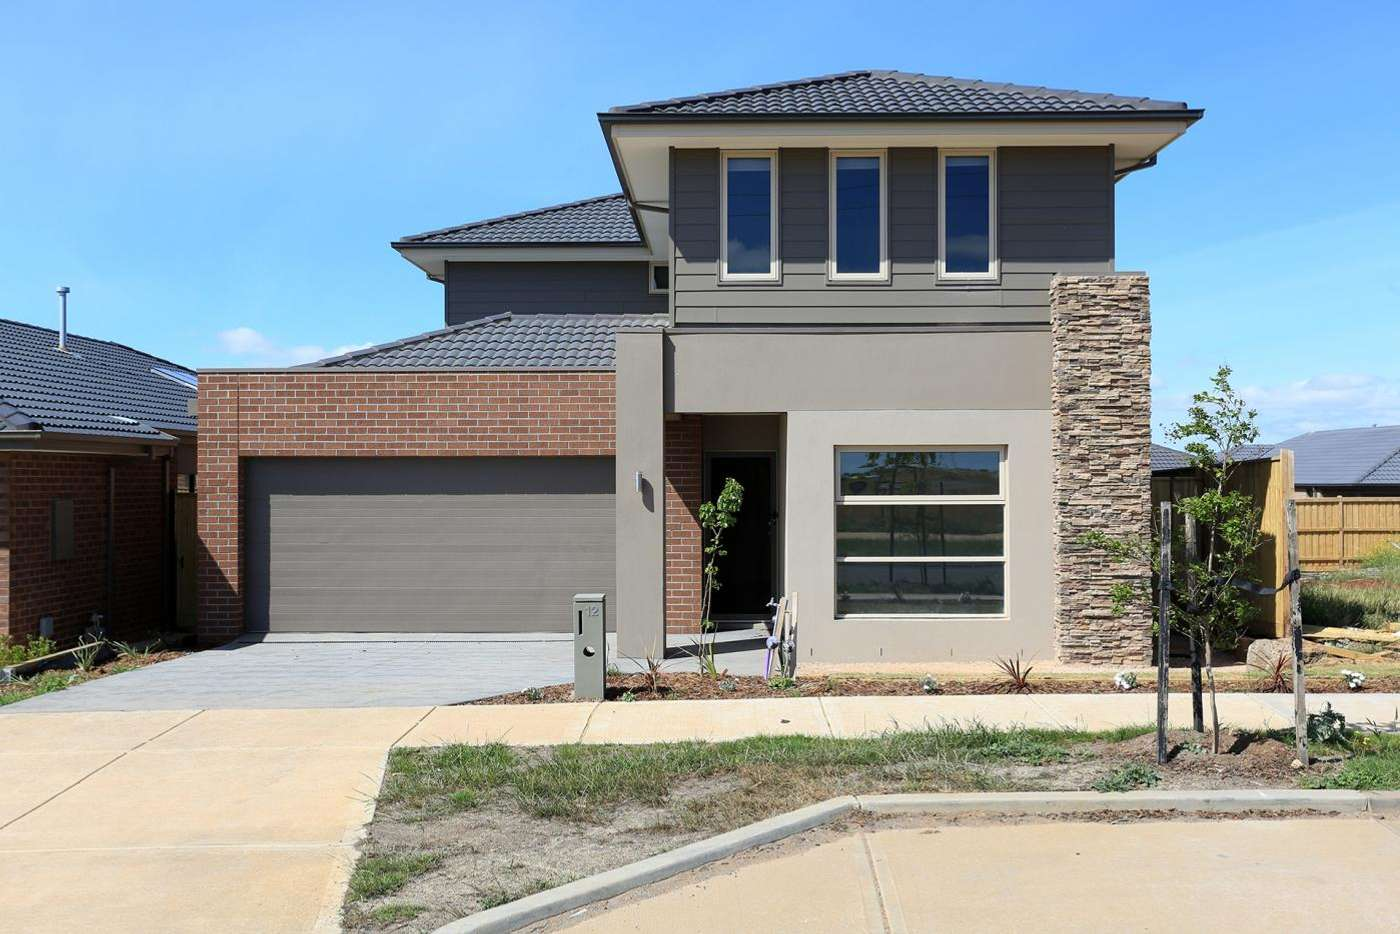 Main view of Homely house listing, 12 Richford Street, Tarneit VIC 3029